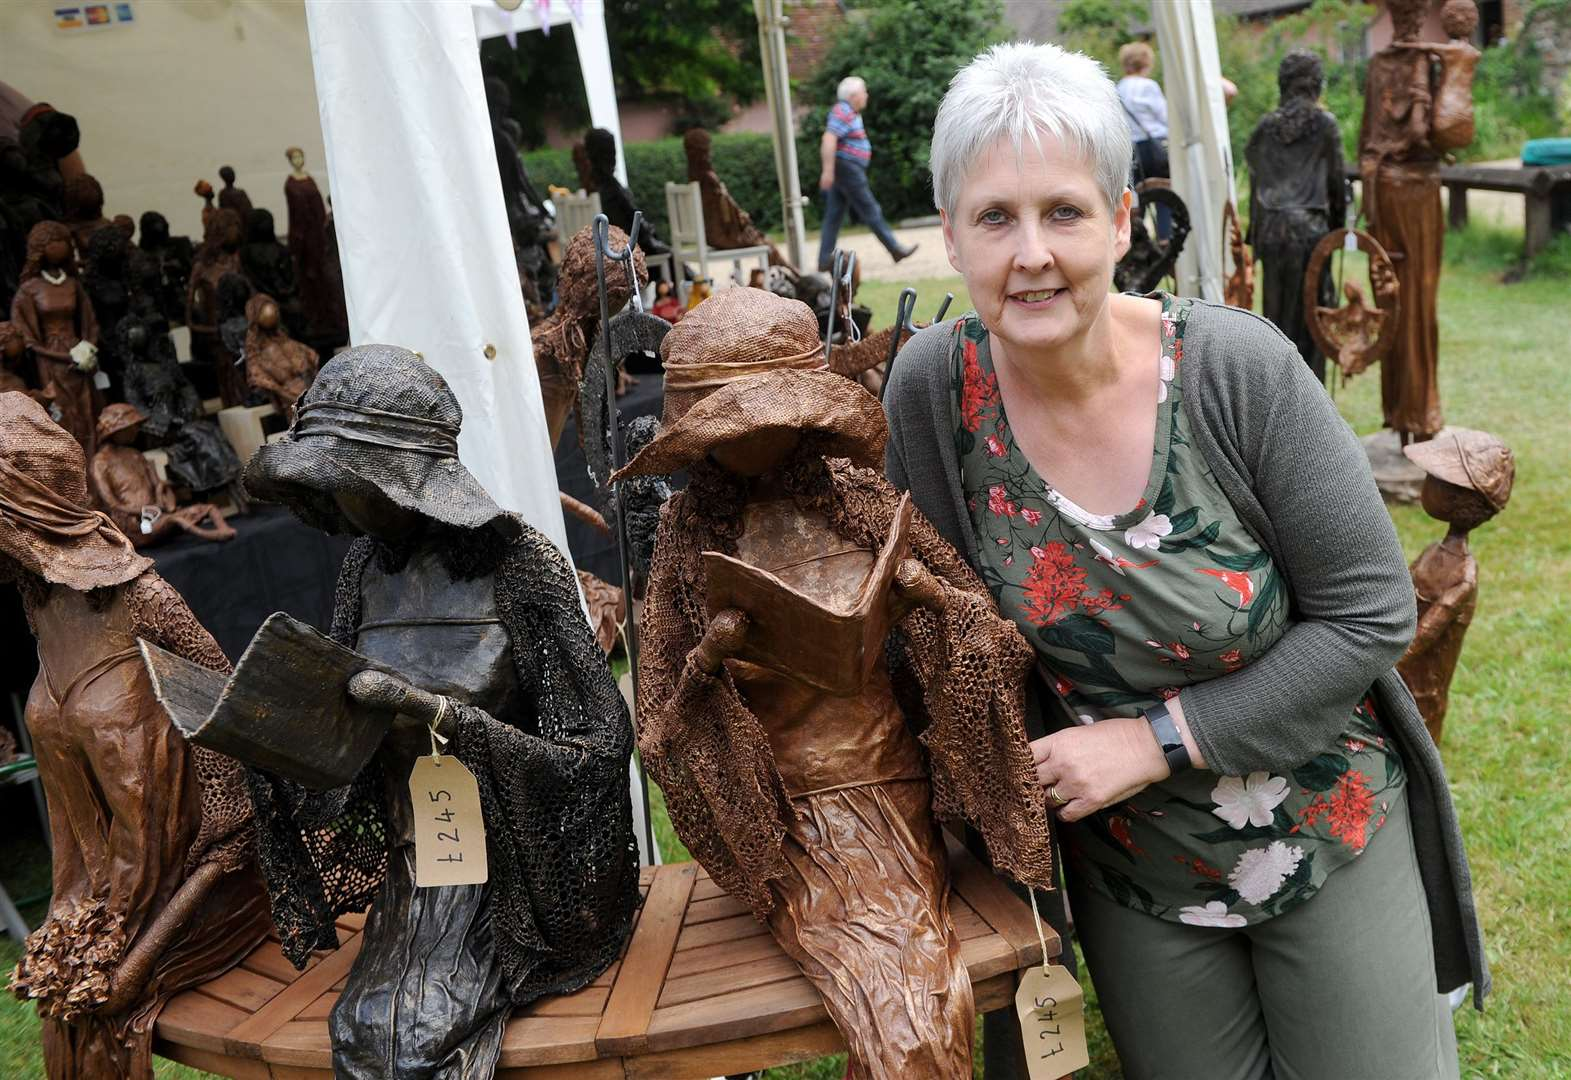 PICTURES: Creators showcase crafts for thousands of visitors at Clare Priory